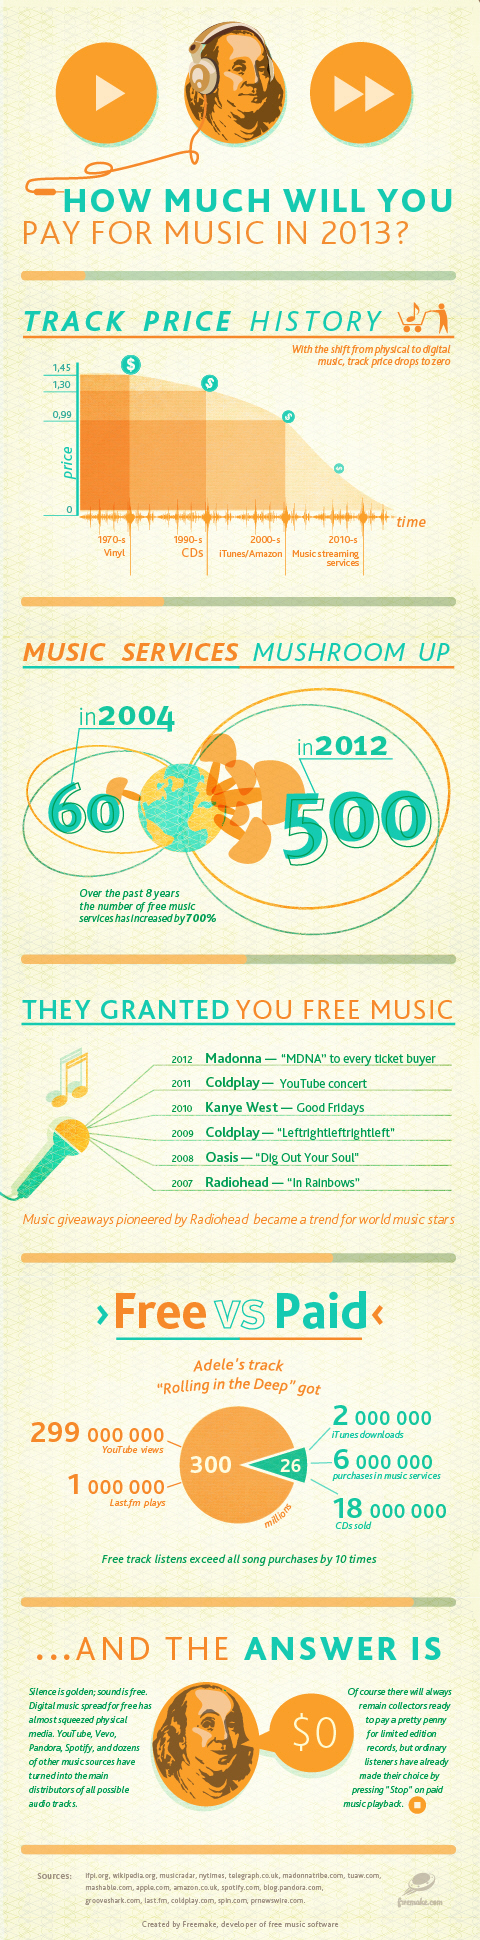 How-Much-Will-You-Pay-For-Music-In-2013-infographic